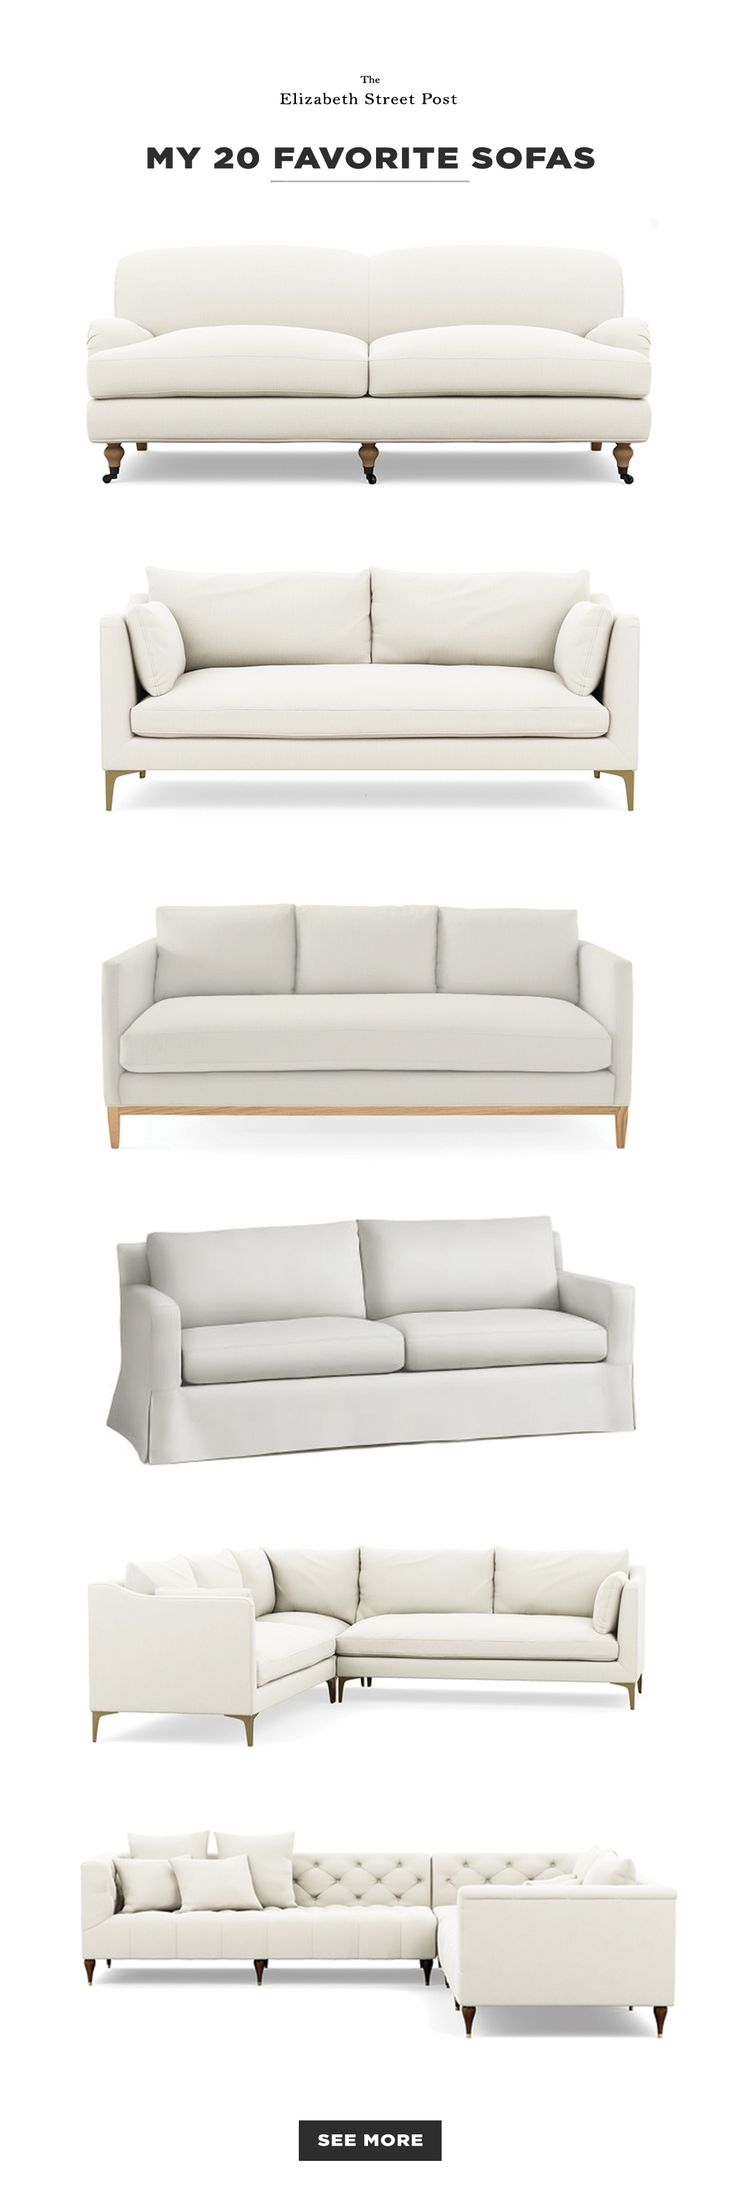 20 classic sofa designs for living rooms // my favorites